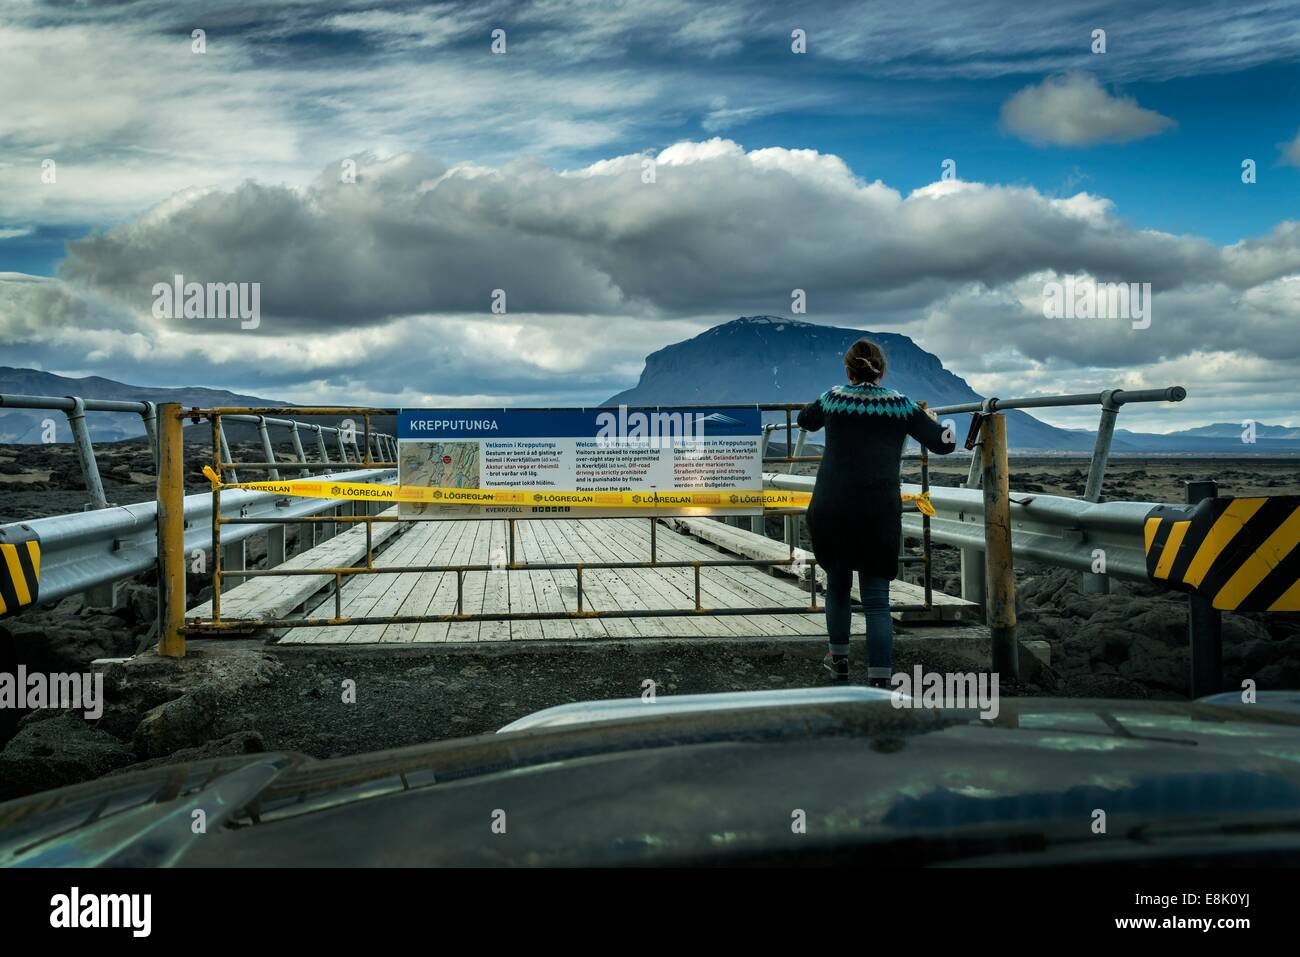 Woman standing by a closed bridge-Krepputunga area, by the Holuhraun Fissure Eruption, near the Bardarbunga Volcano, - Stock Image